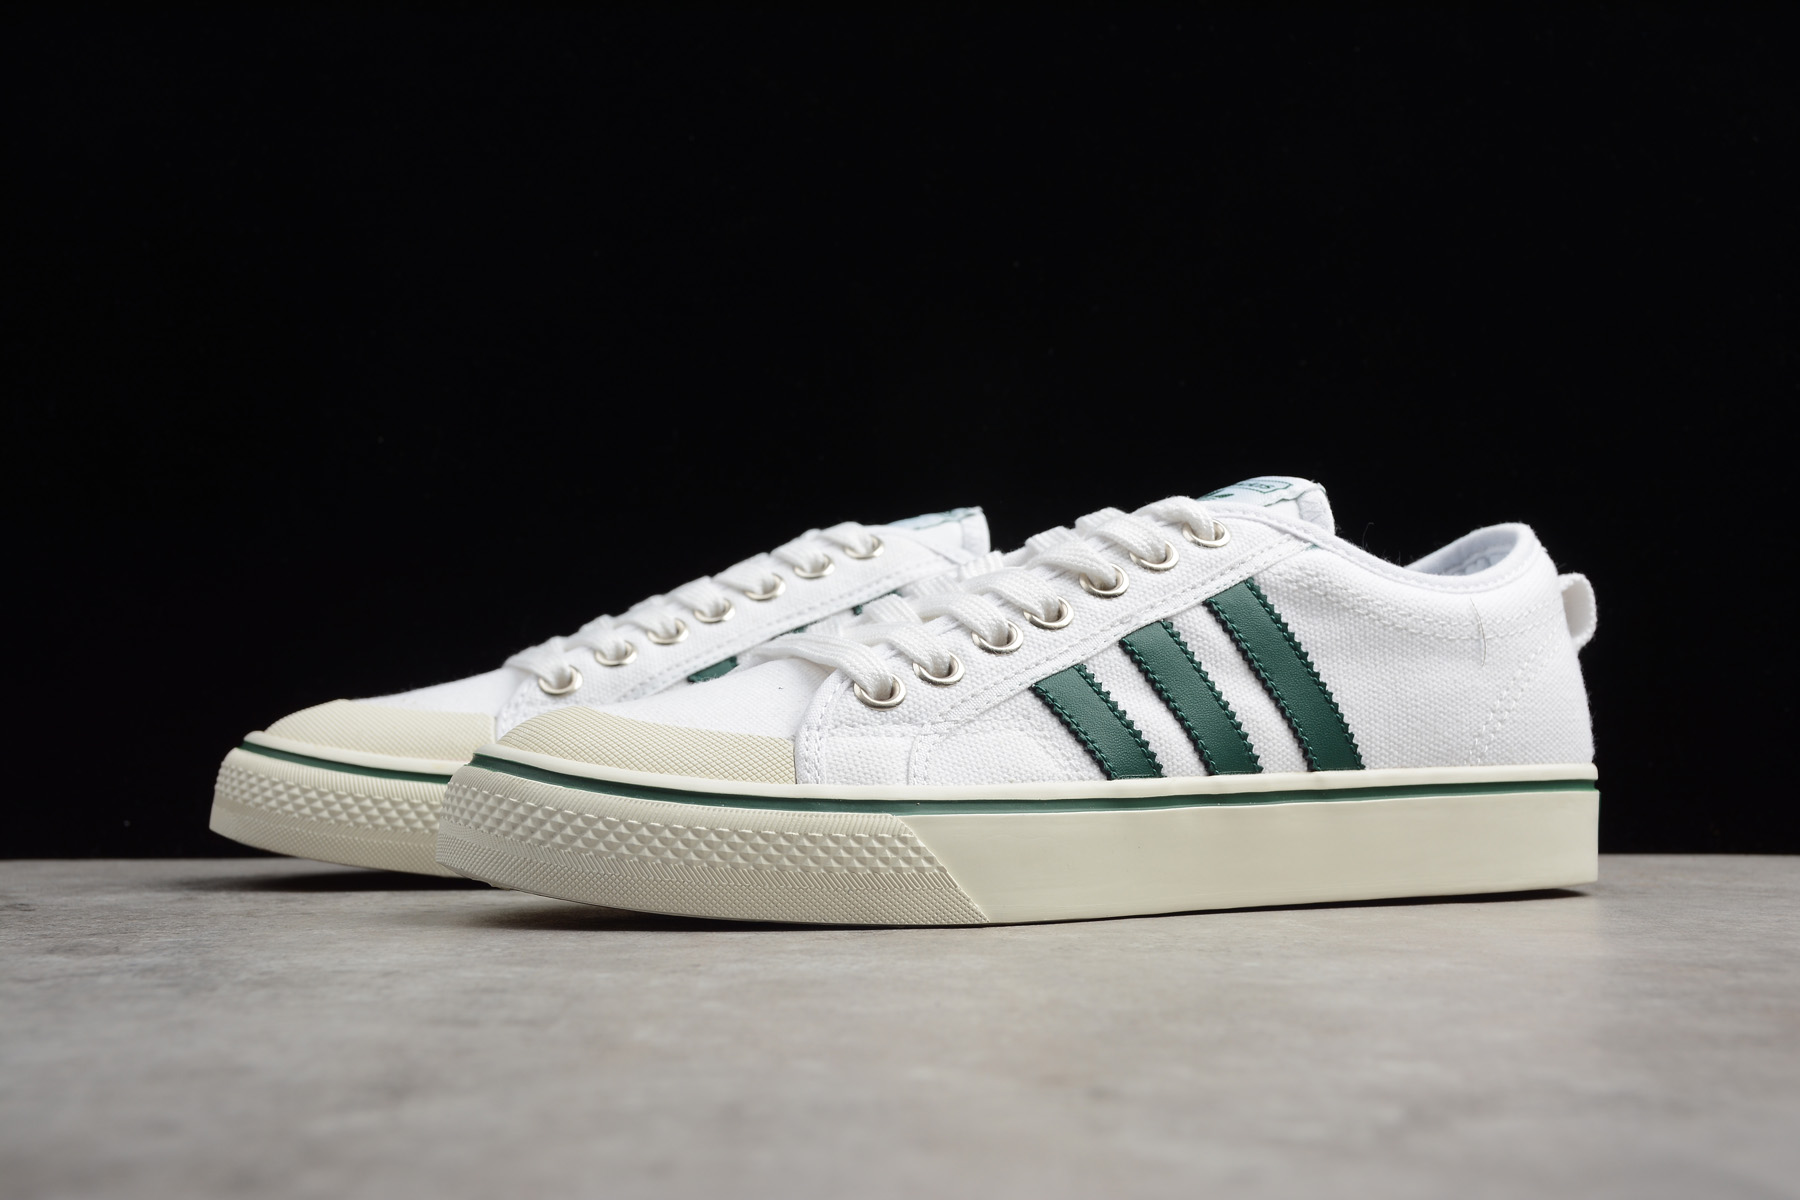 adidas Nizza White Green Canvas Men's and Women's Size Shoes CQ2327